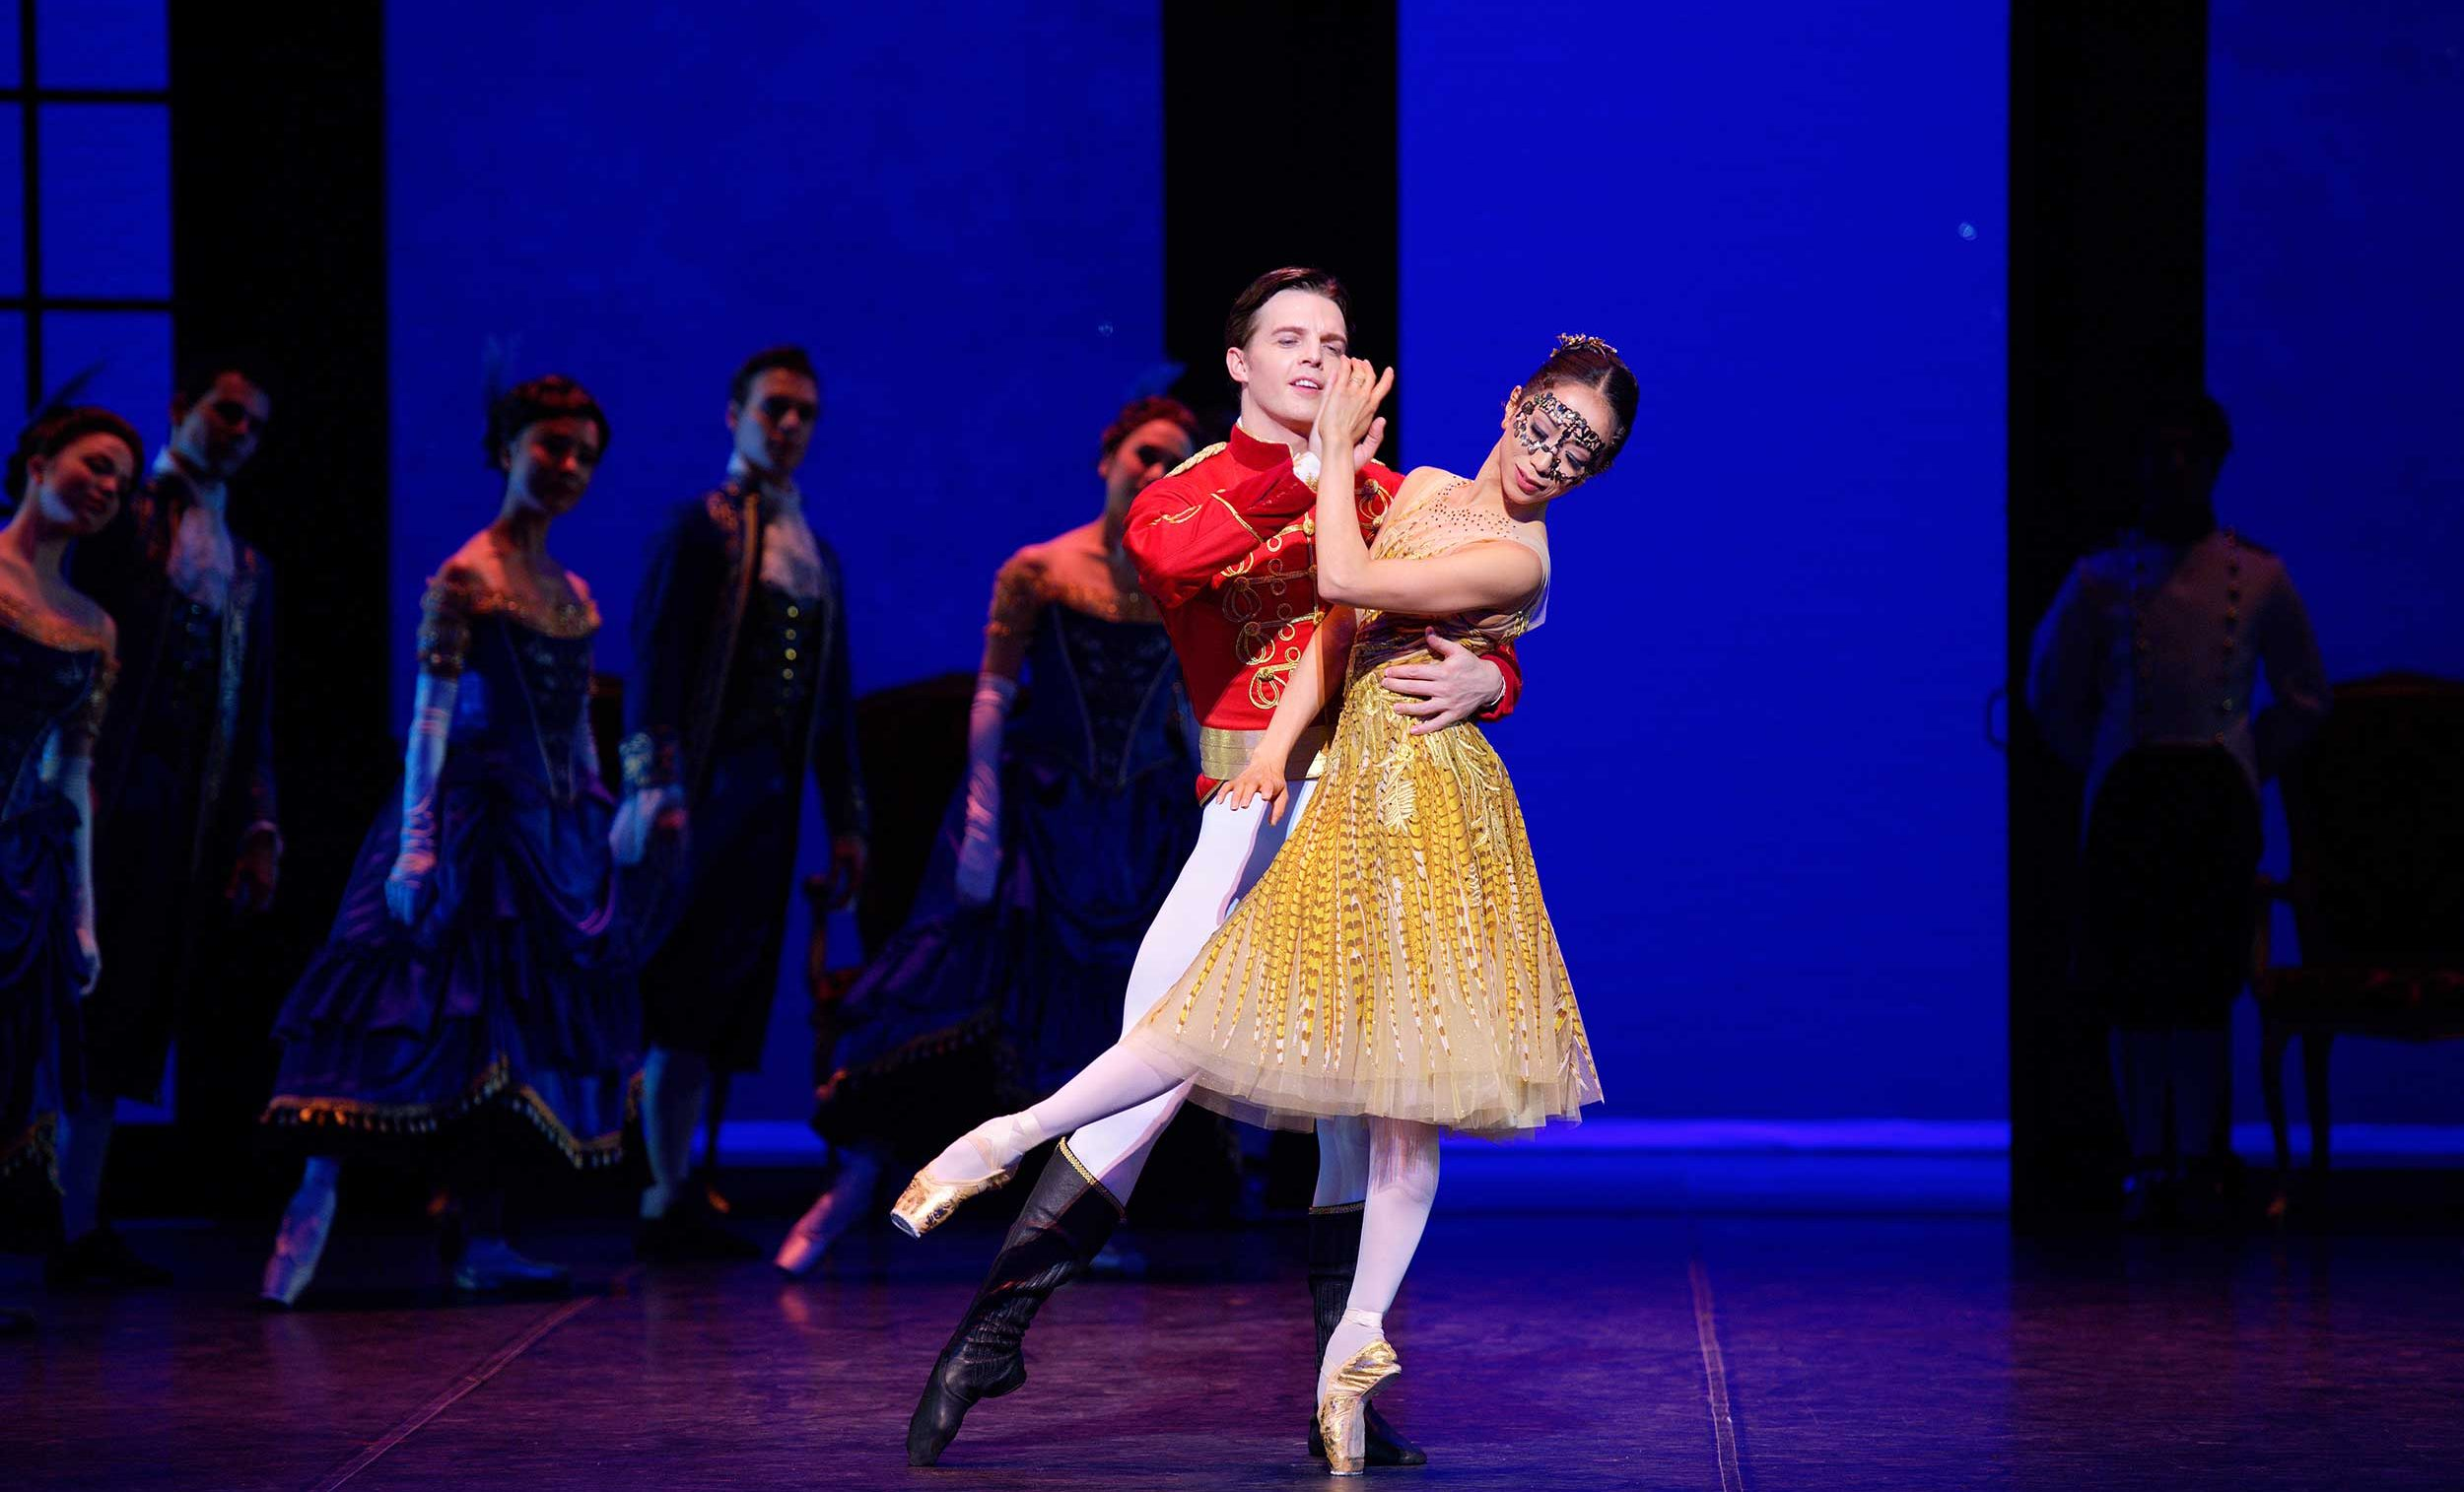 WEB-Erina-Takahashi-and-Joseph-Caley-in-English-National-Ballet's-Cinderella-(c)-Laurent-Liotardo-(3)